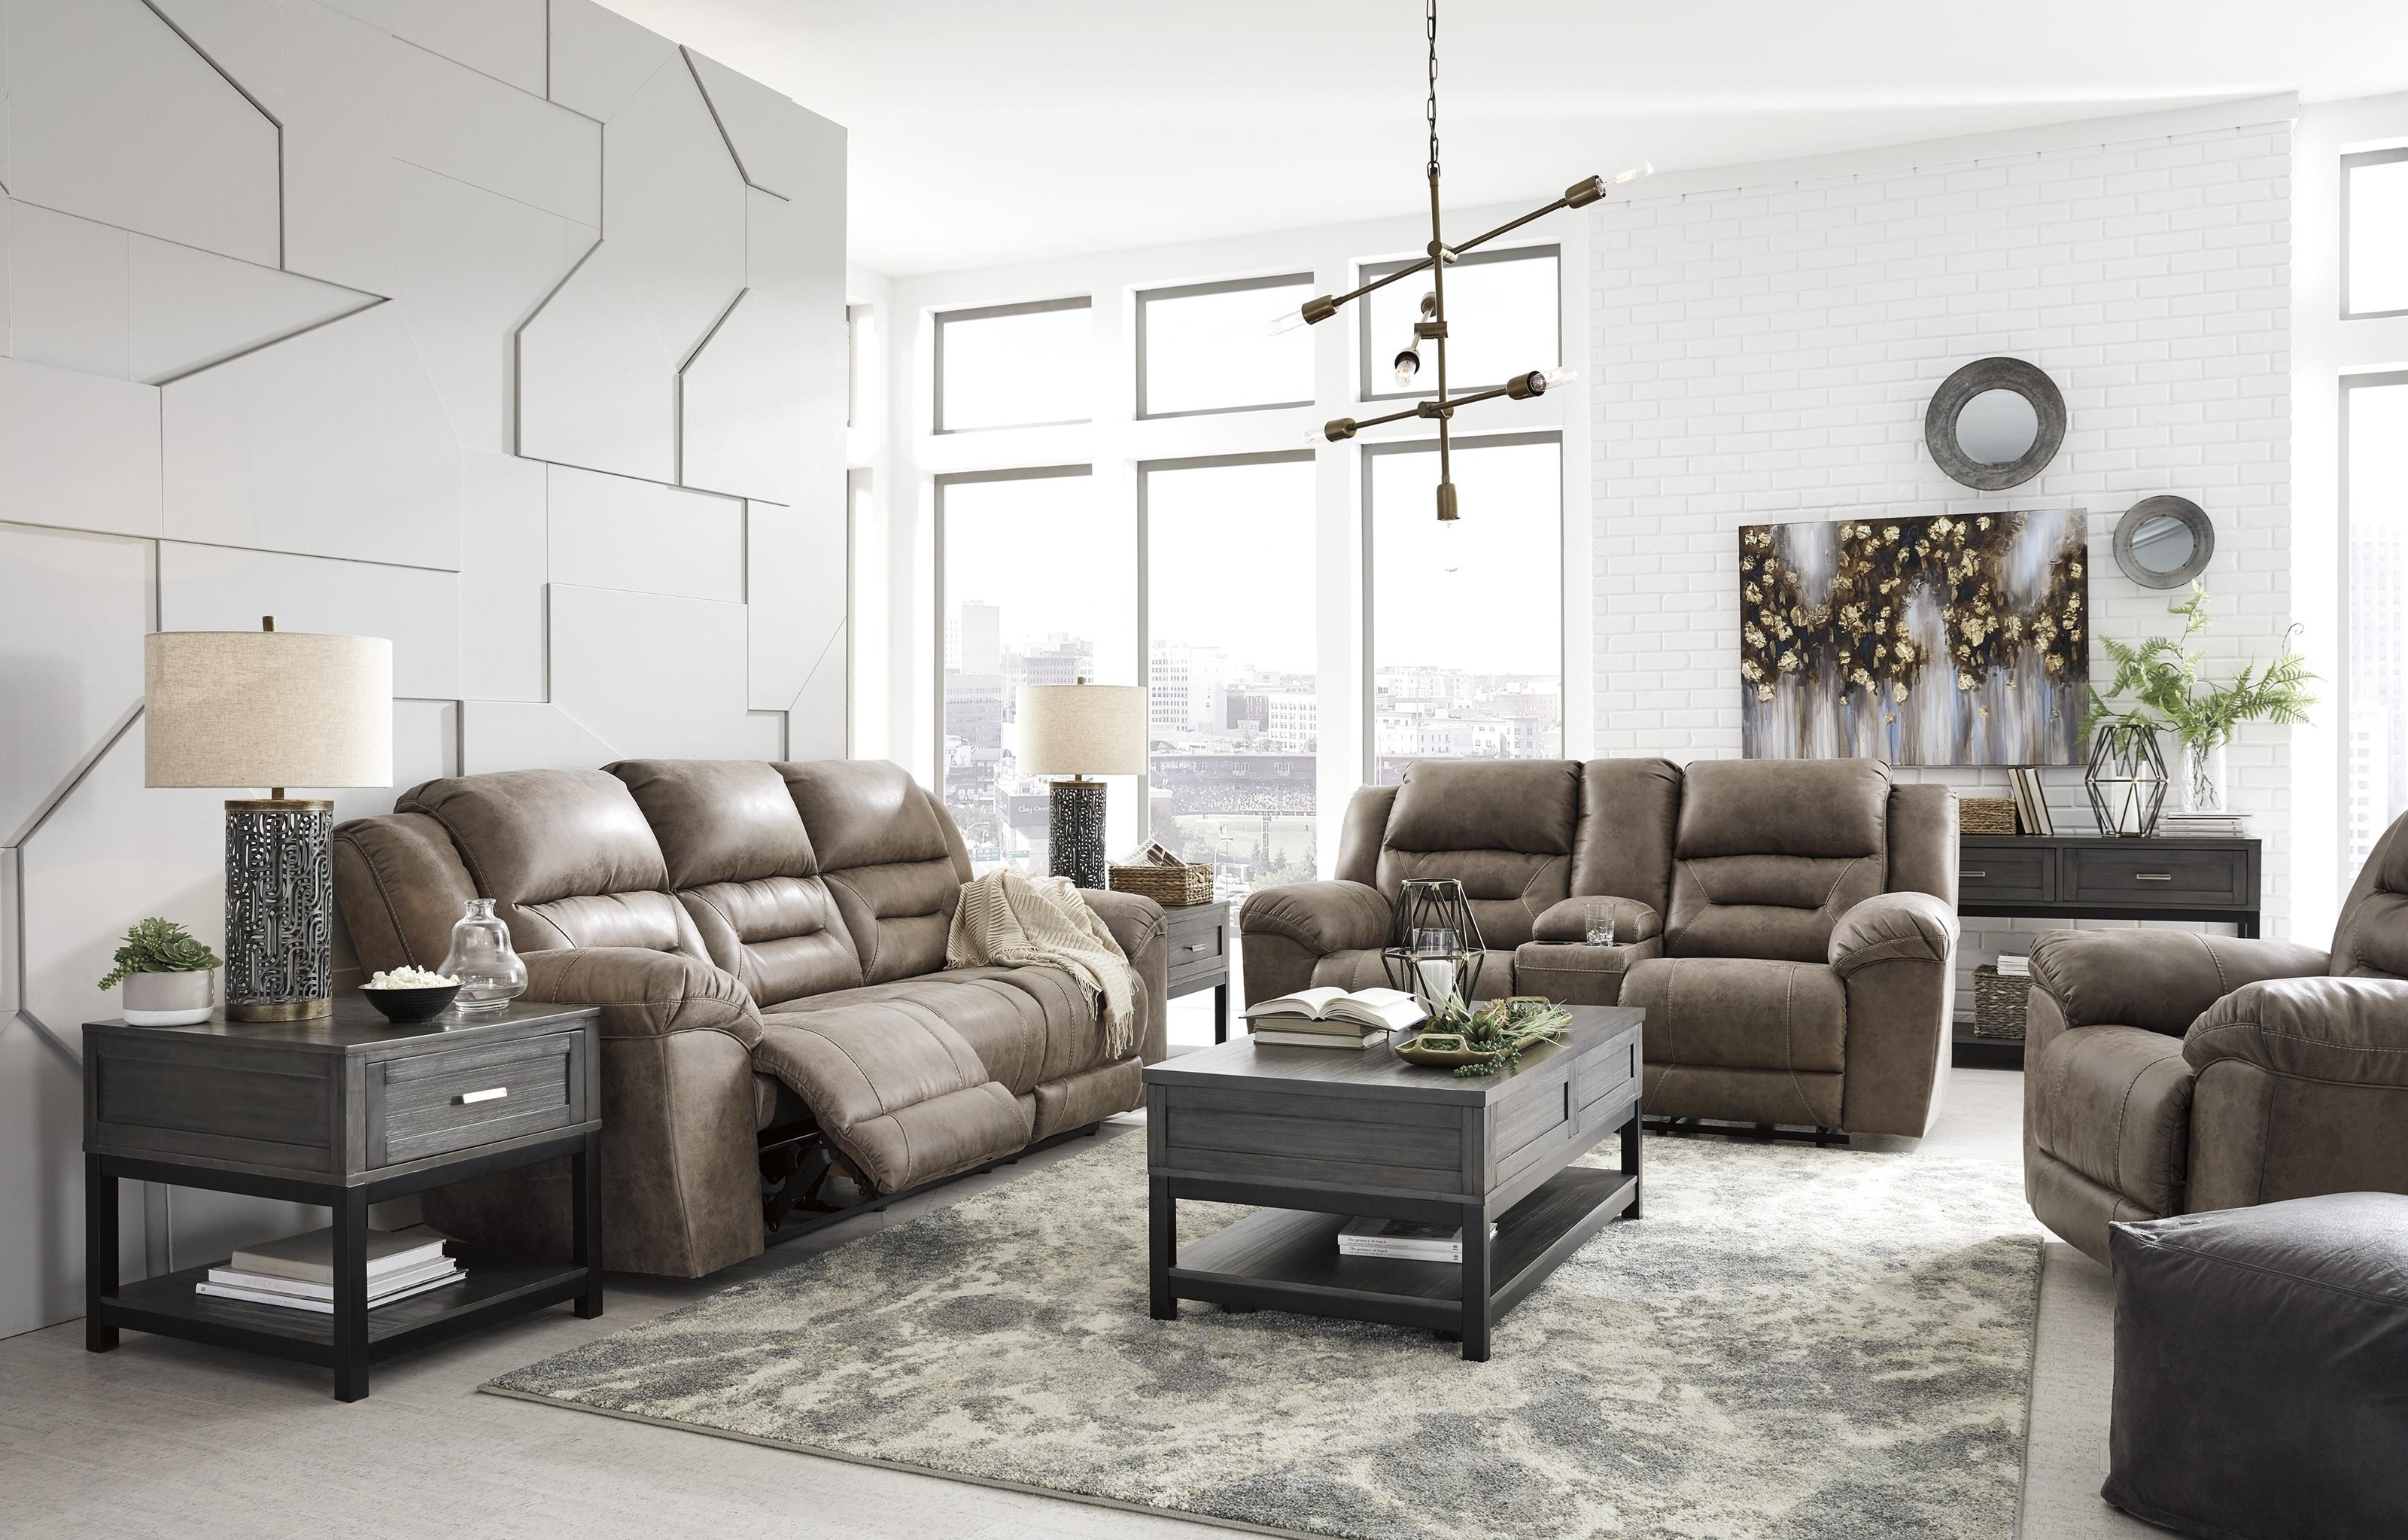 Stoneland Power Recliner Sofa and Power Recliner Set by Signature Design by Ashley at Sam Levitz Outlet